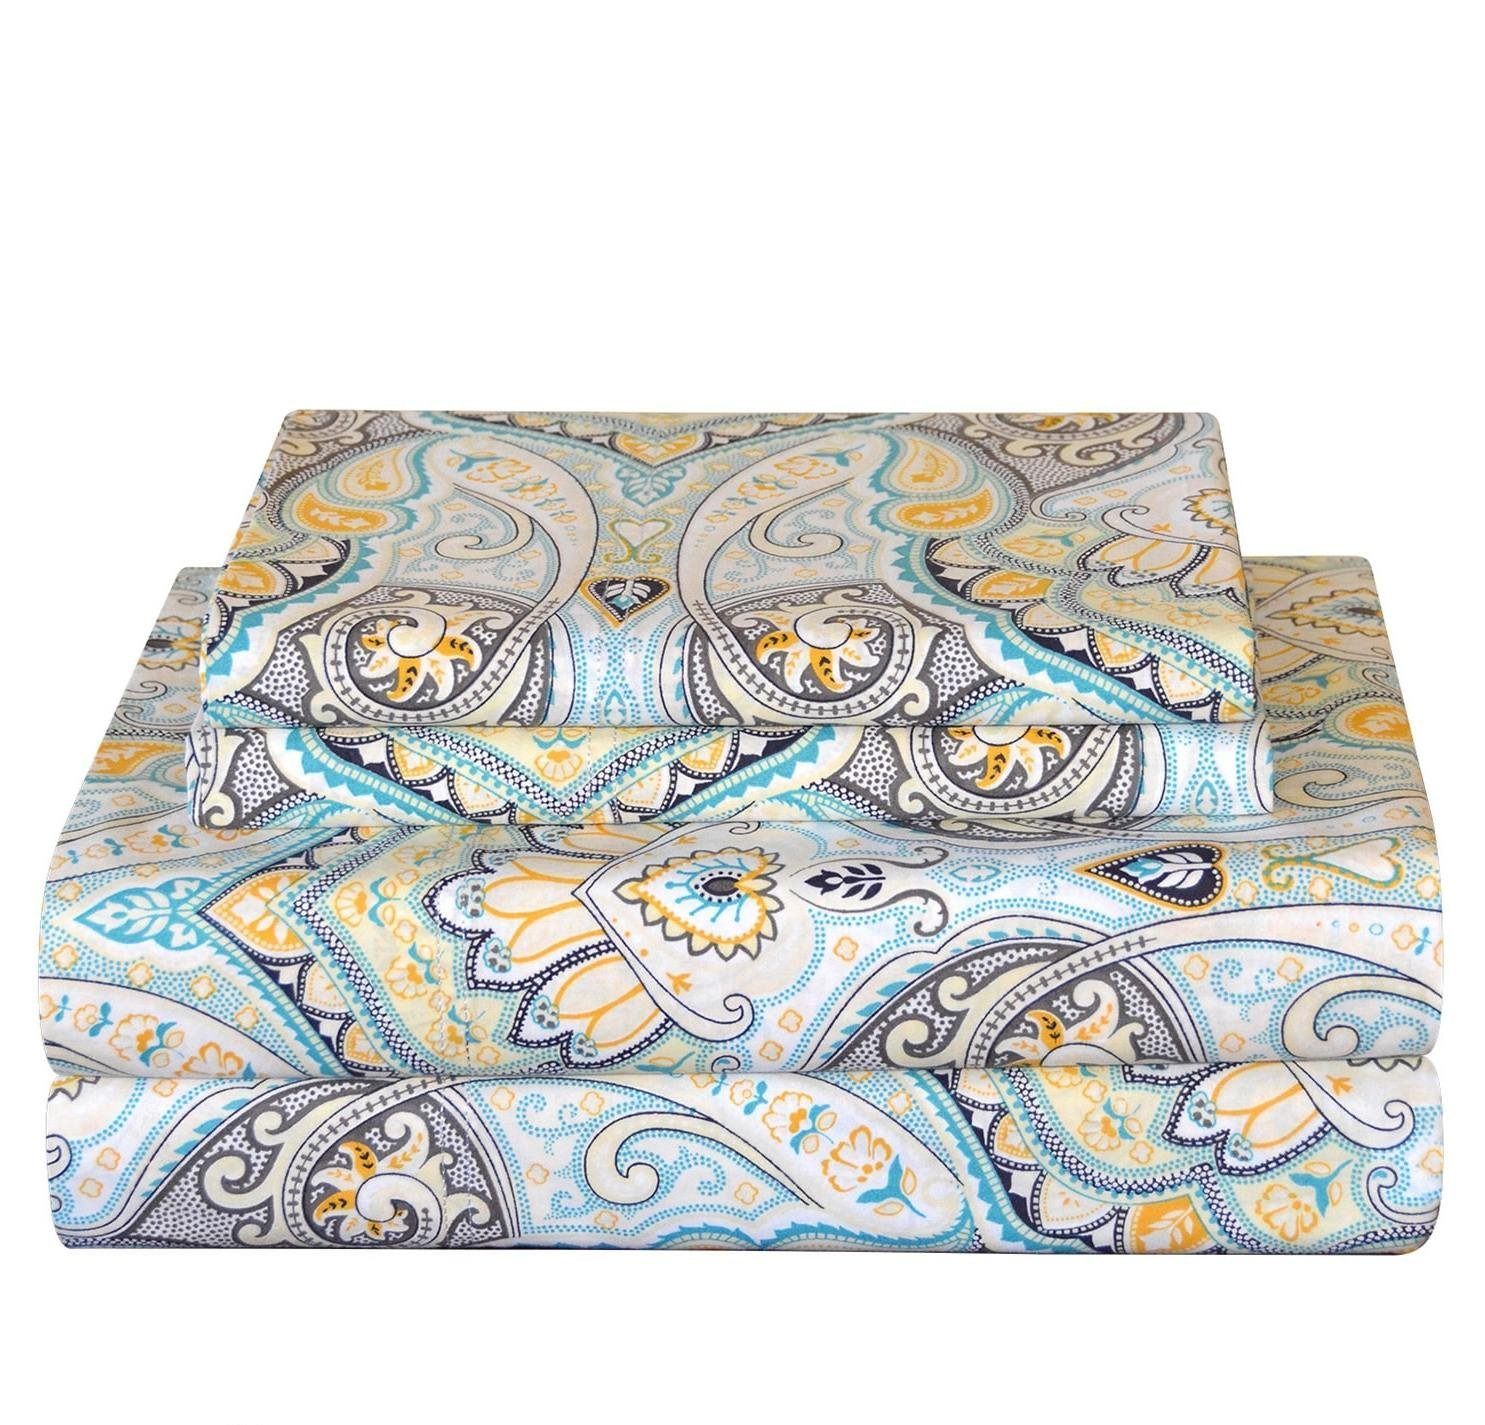 OSK 4 Piece Girls Cypress Blue Yellow Paisley Sheet Full Set, Light Blue Color Floral Bohemian Pattern Kids Bedding For Bedroom, Modern Contemporary Flower Motif Teen Themed, Cotton Percale